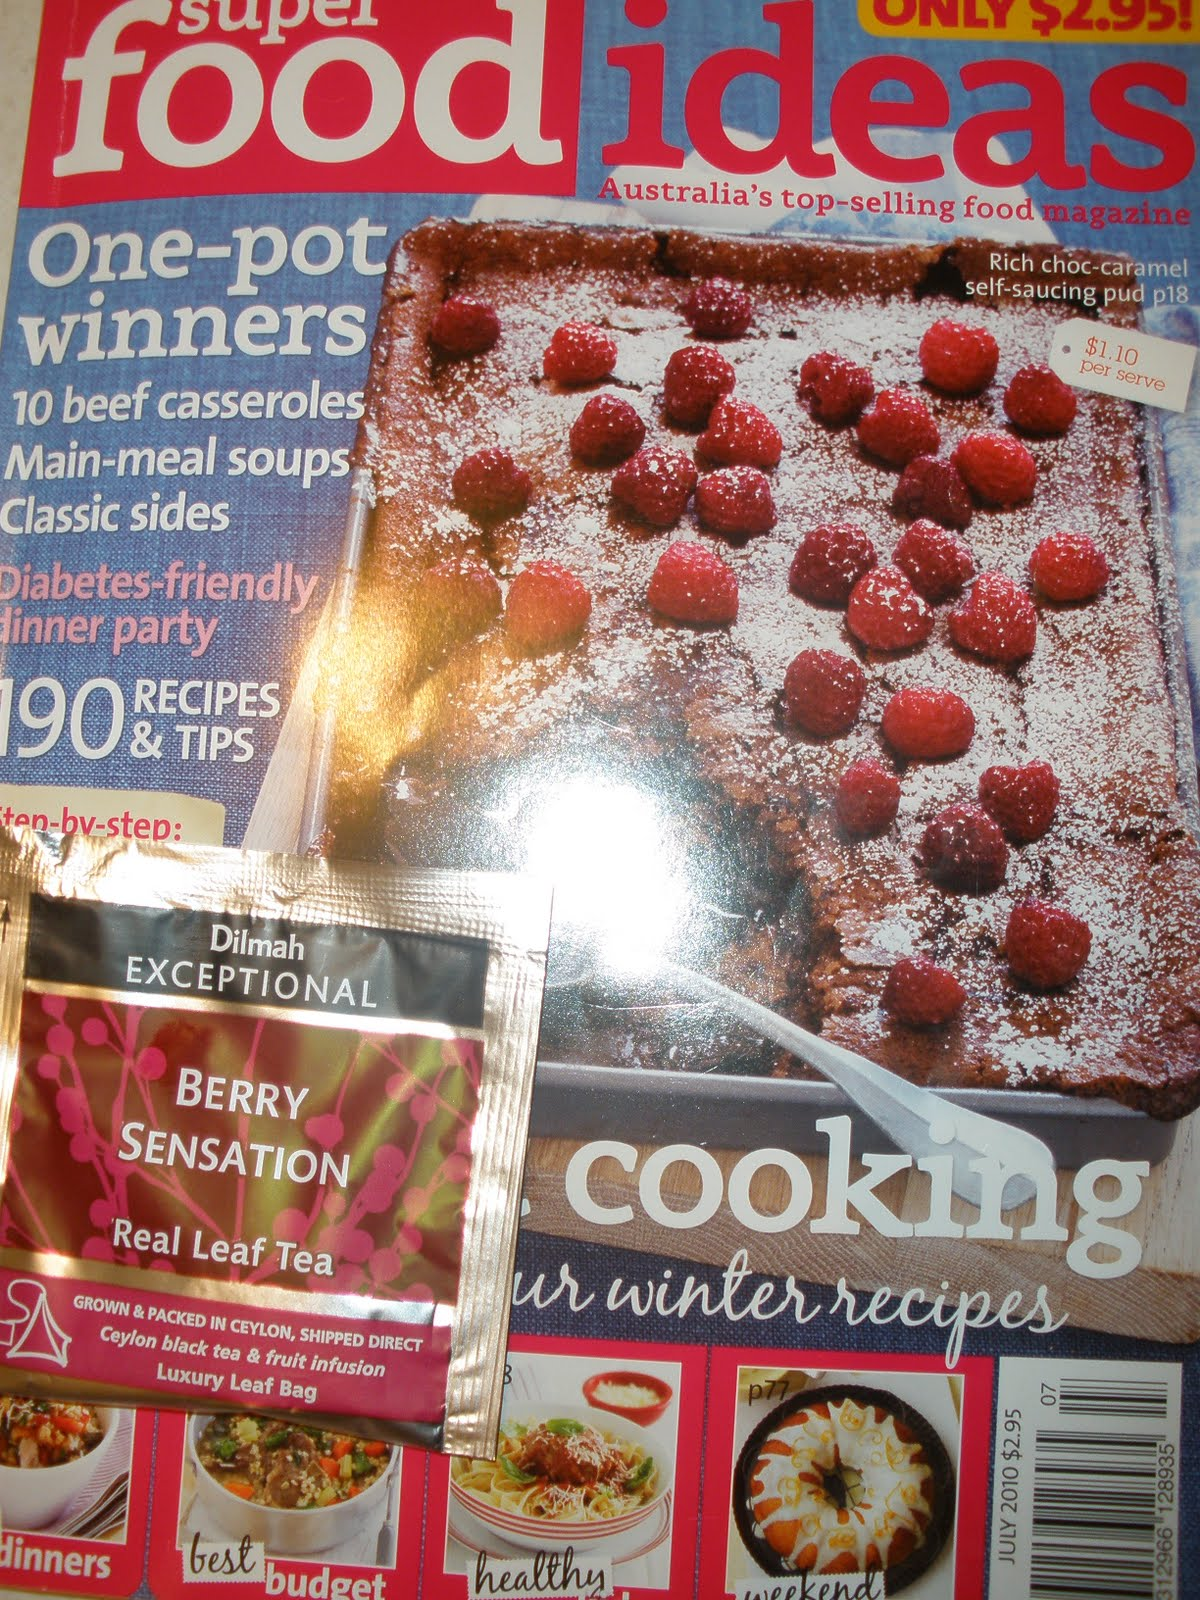 Sunday in my kitchen 2010 the magazine that this recipe comes from super food ideas is an absolute little ripper of a mag and for 295 its a bargain with lots of other recipes forumfinder Gallery